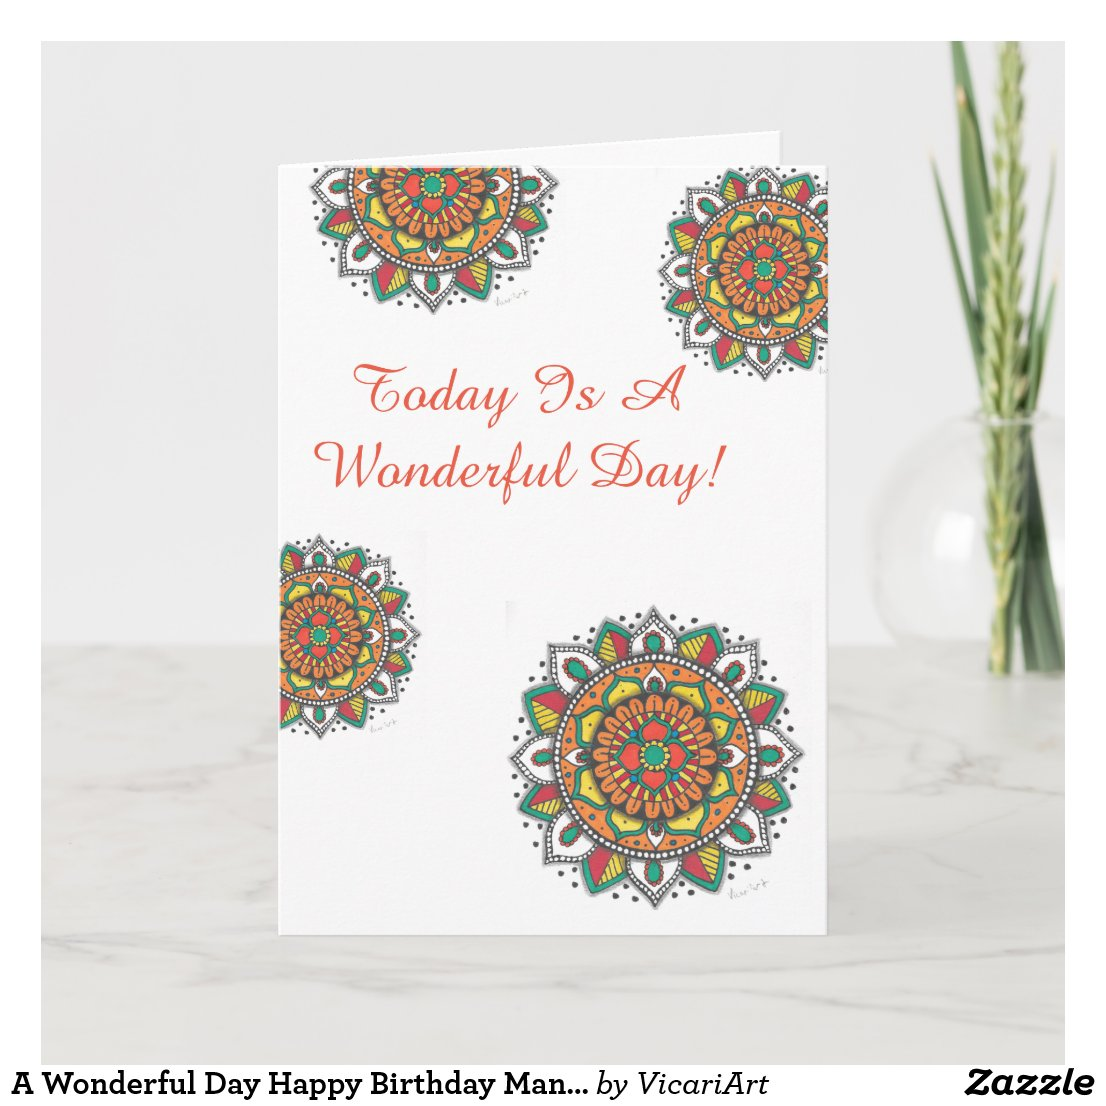 A Wonderful Day Happy Birthday Mandala Card